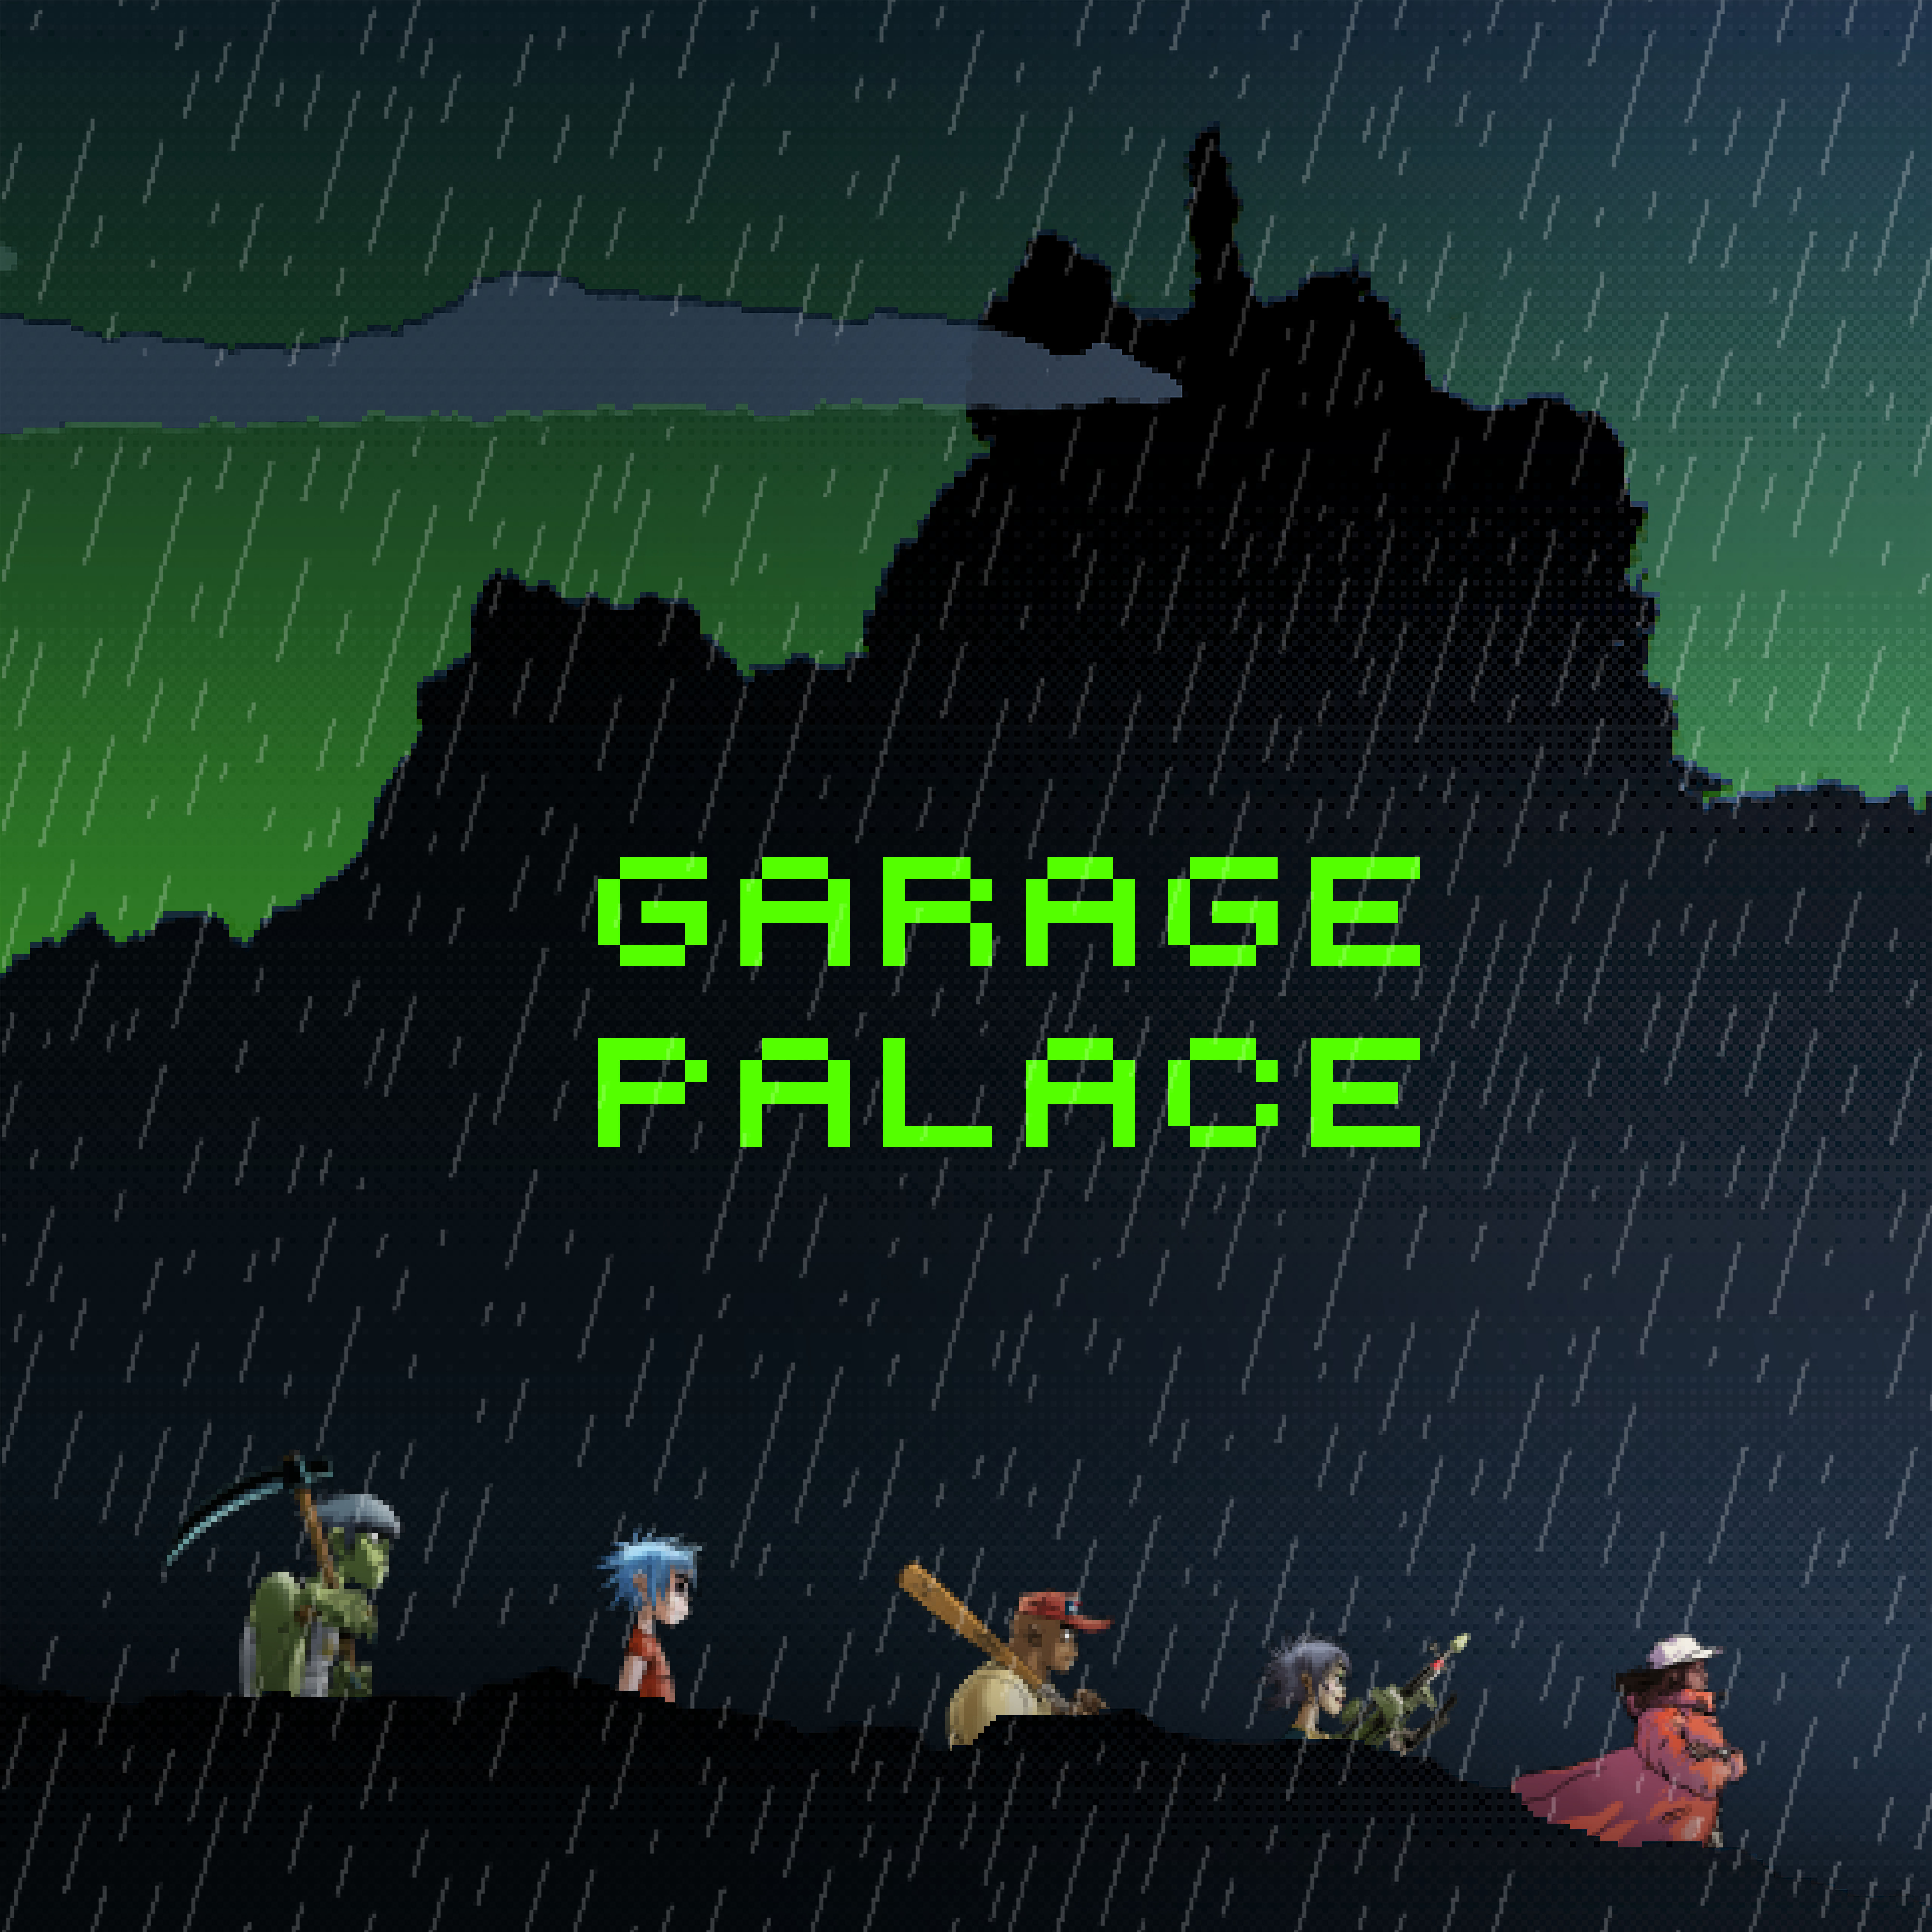 GARAGE PALACE HAS ARRIVED